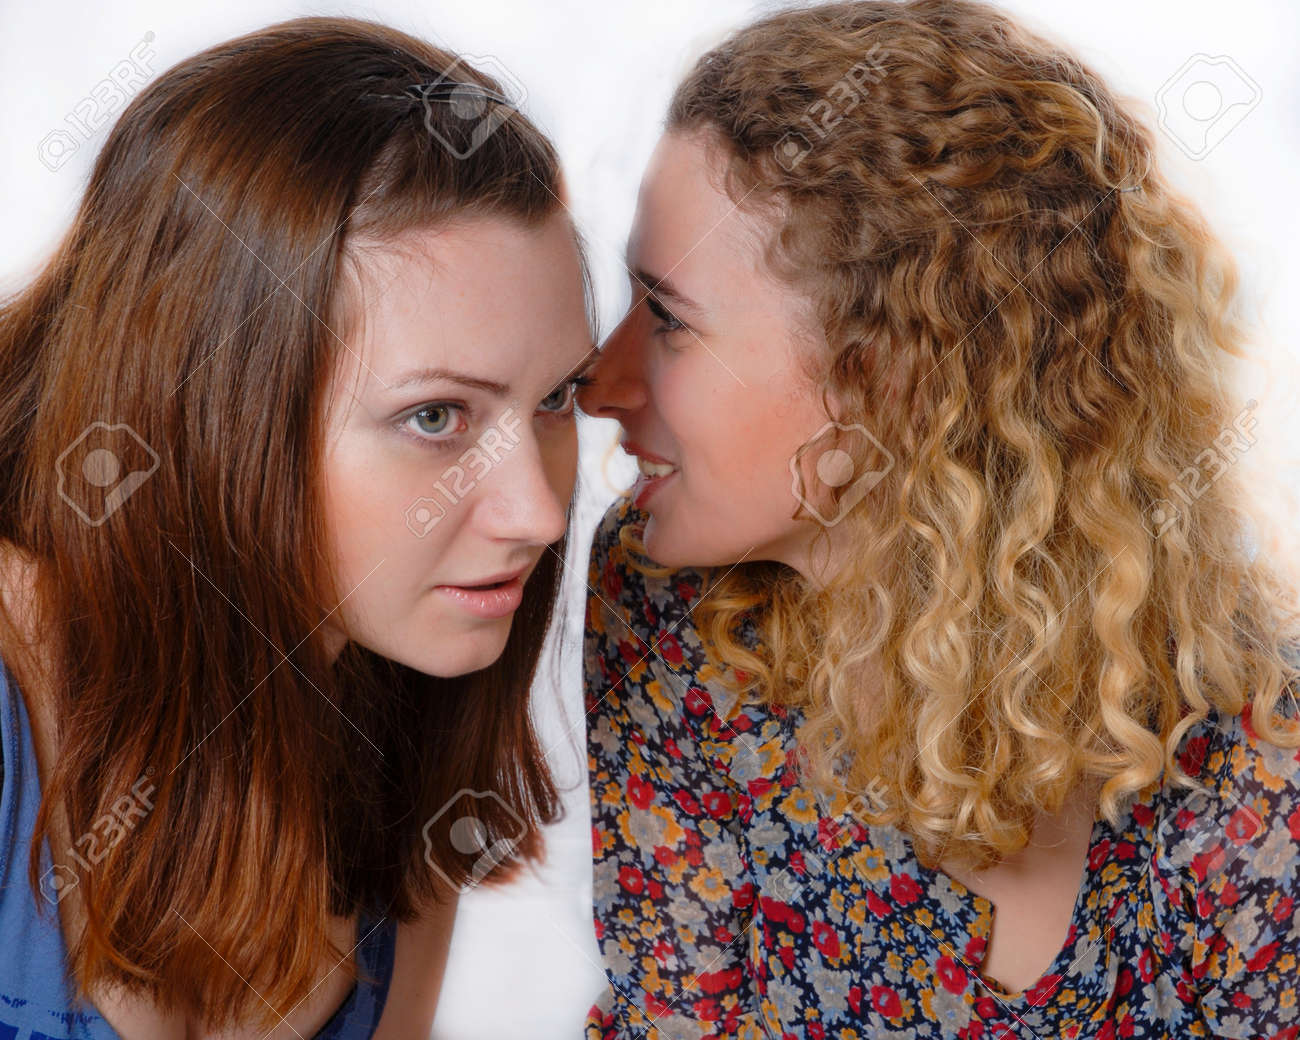 Two beautiful young girls talking privately on white background Stock Photo - 20108640